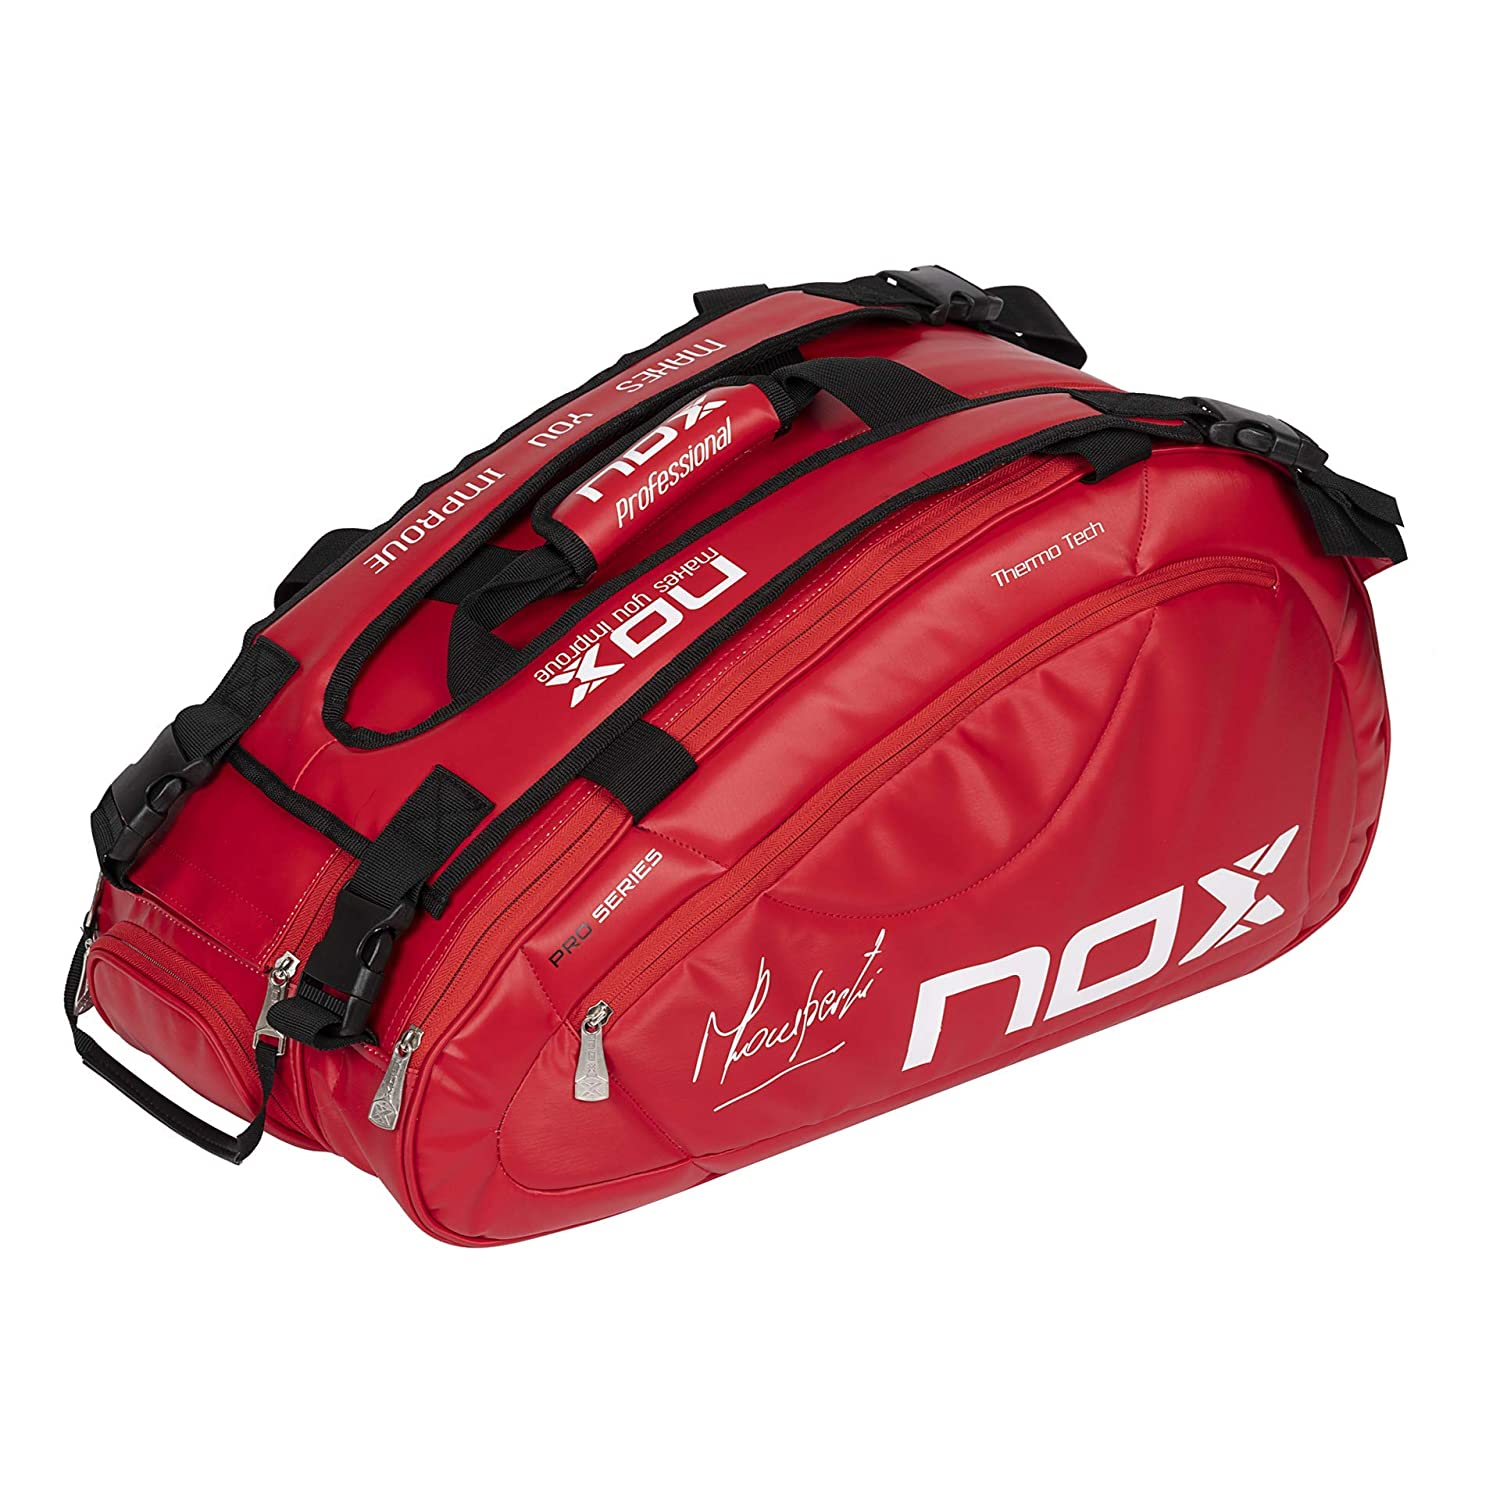 NOX Tour 2019 Rojo, Adultos Unisex, Multicolor, Talla Unica ...